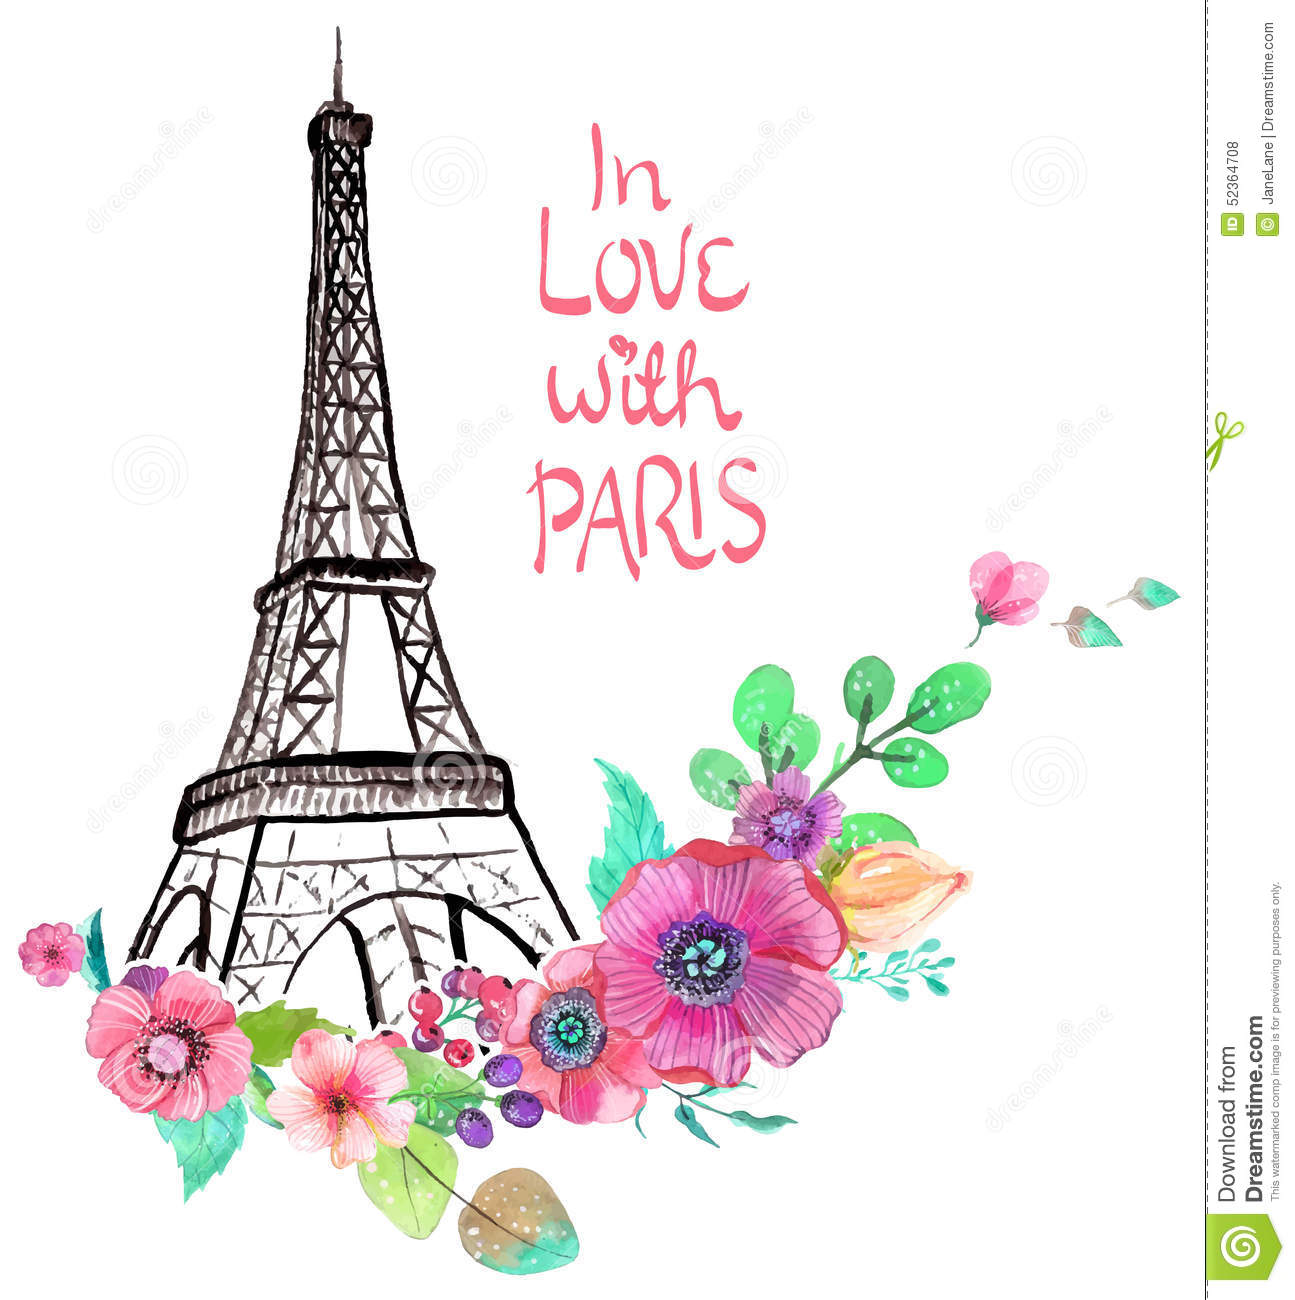 tour eiffel avec des fleurs d 39 aquarelle illustration de vecteur illustration du fond retrait. Black Bedroom Furniture Sets. Home Design Ideas